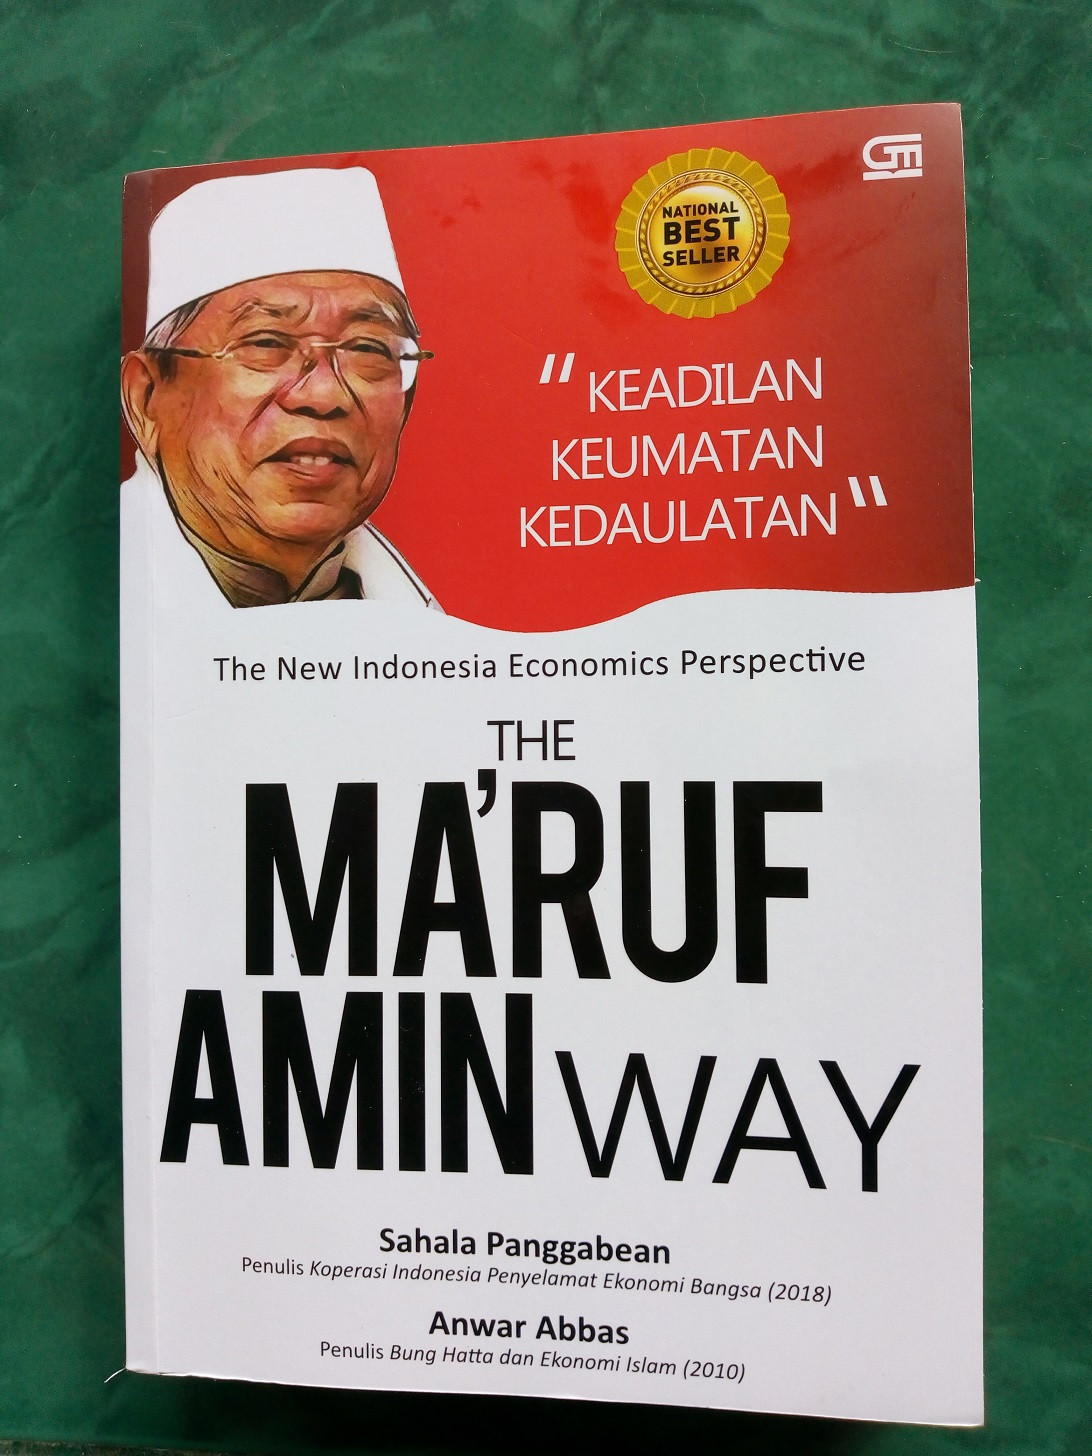 'The Ma'ruf Amin Way': The theoretical ideals of Islamic economics